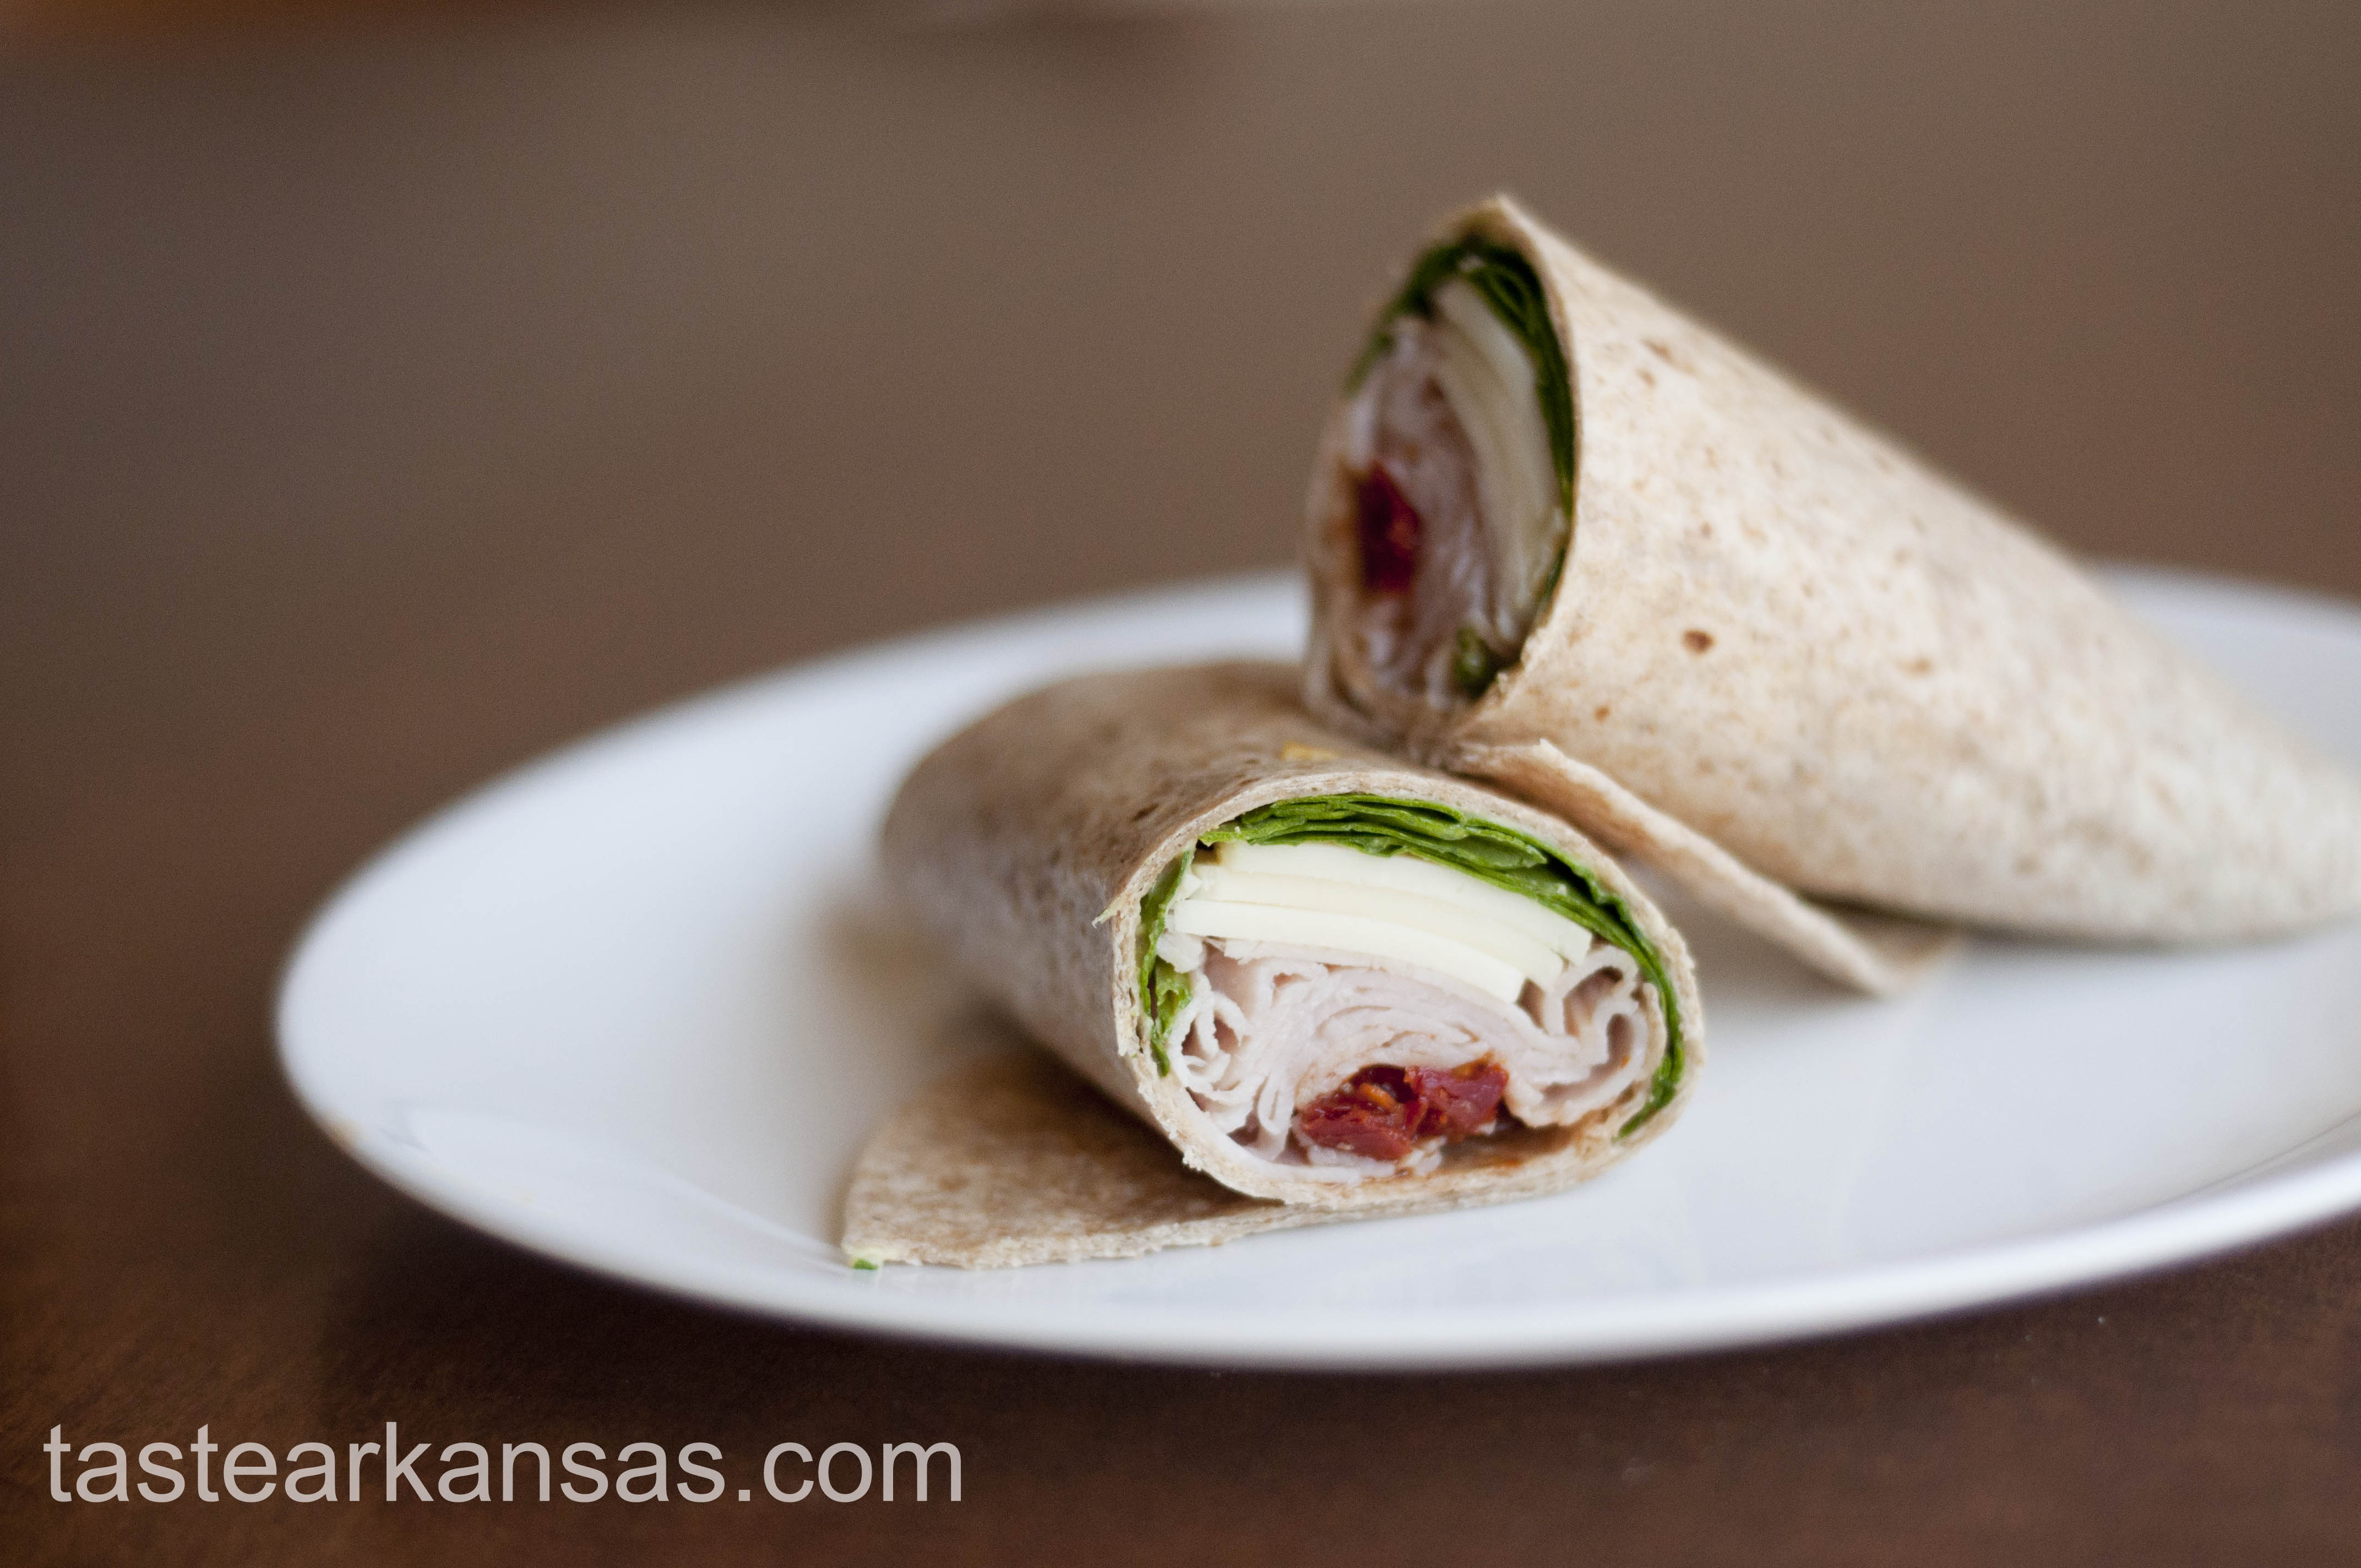 Spinach & Sundried Tomato Turkey Wrap